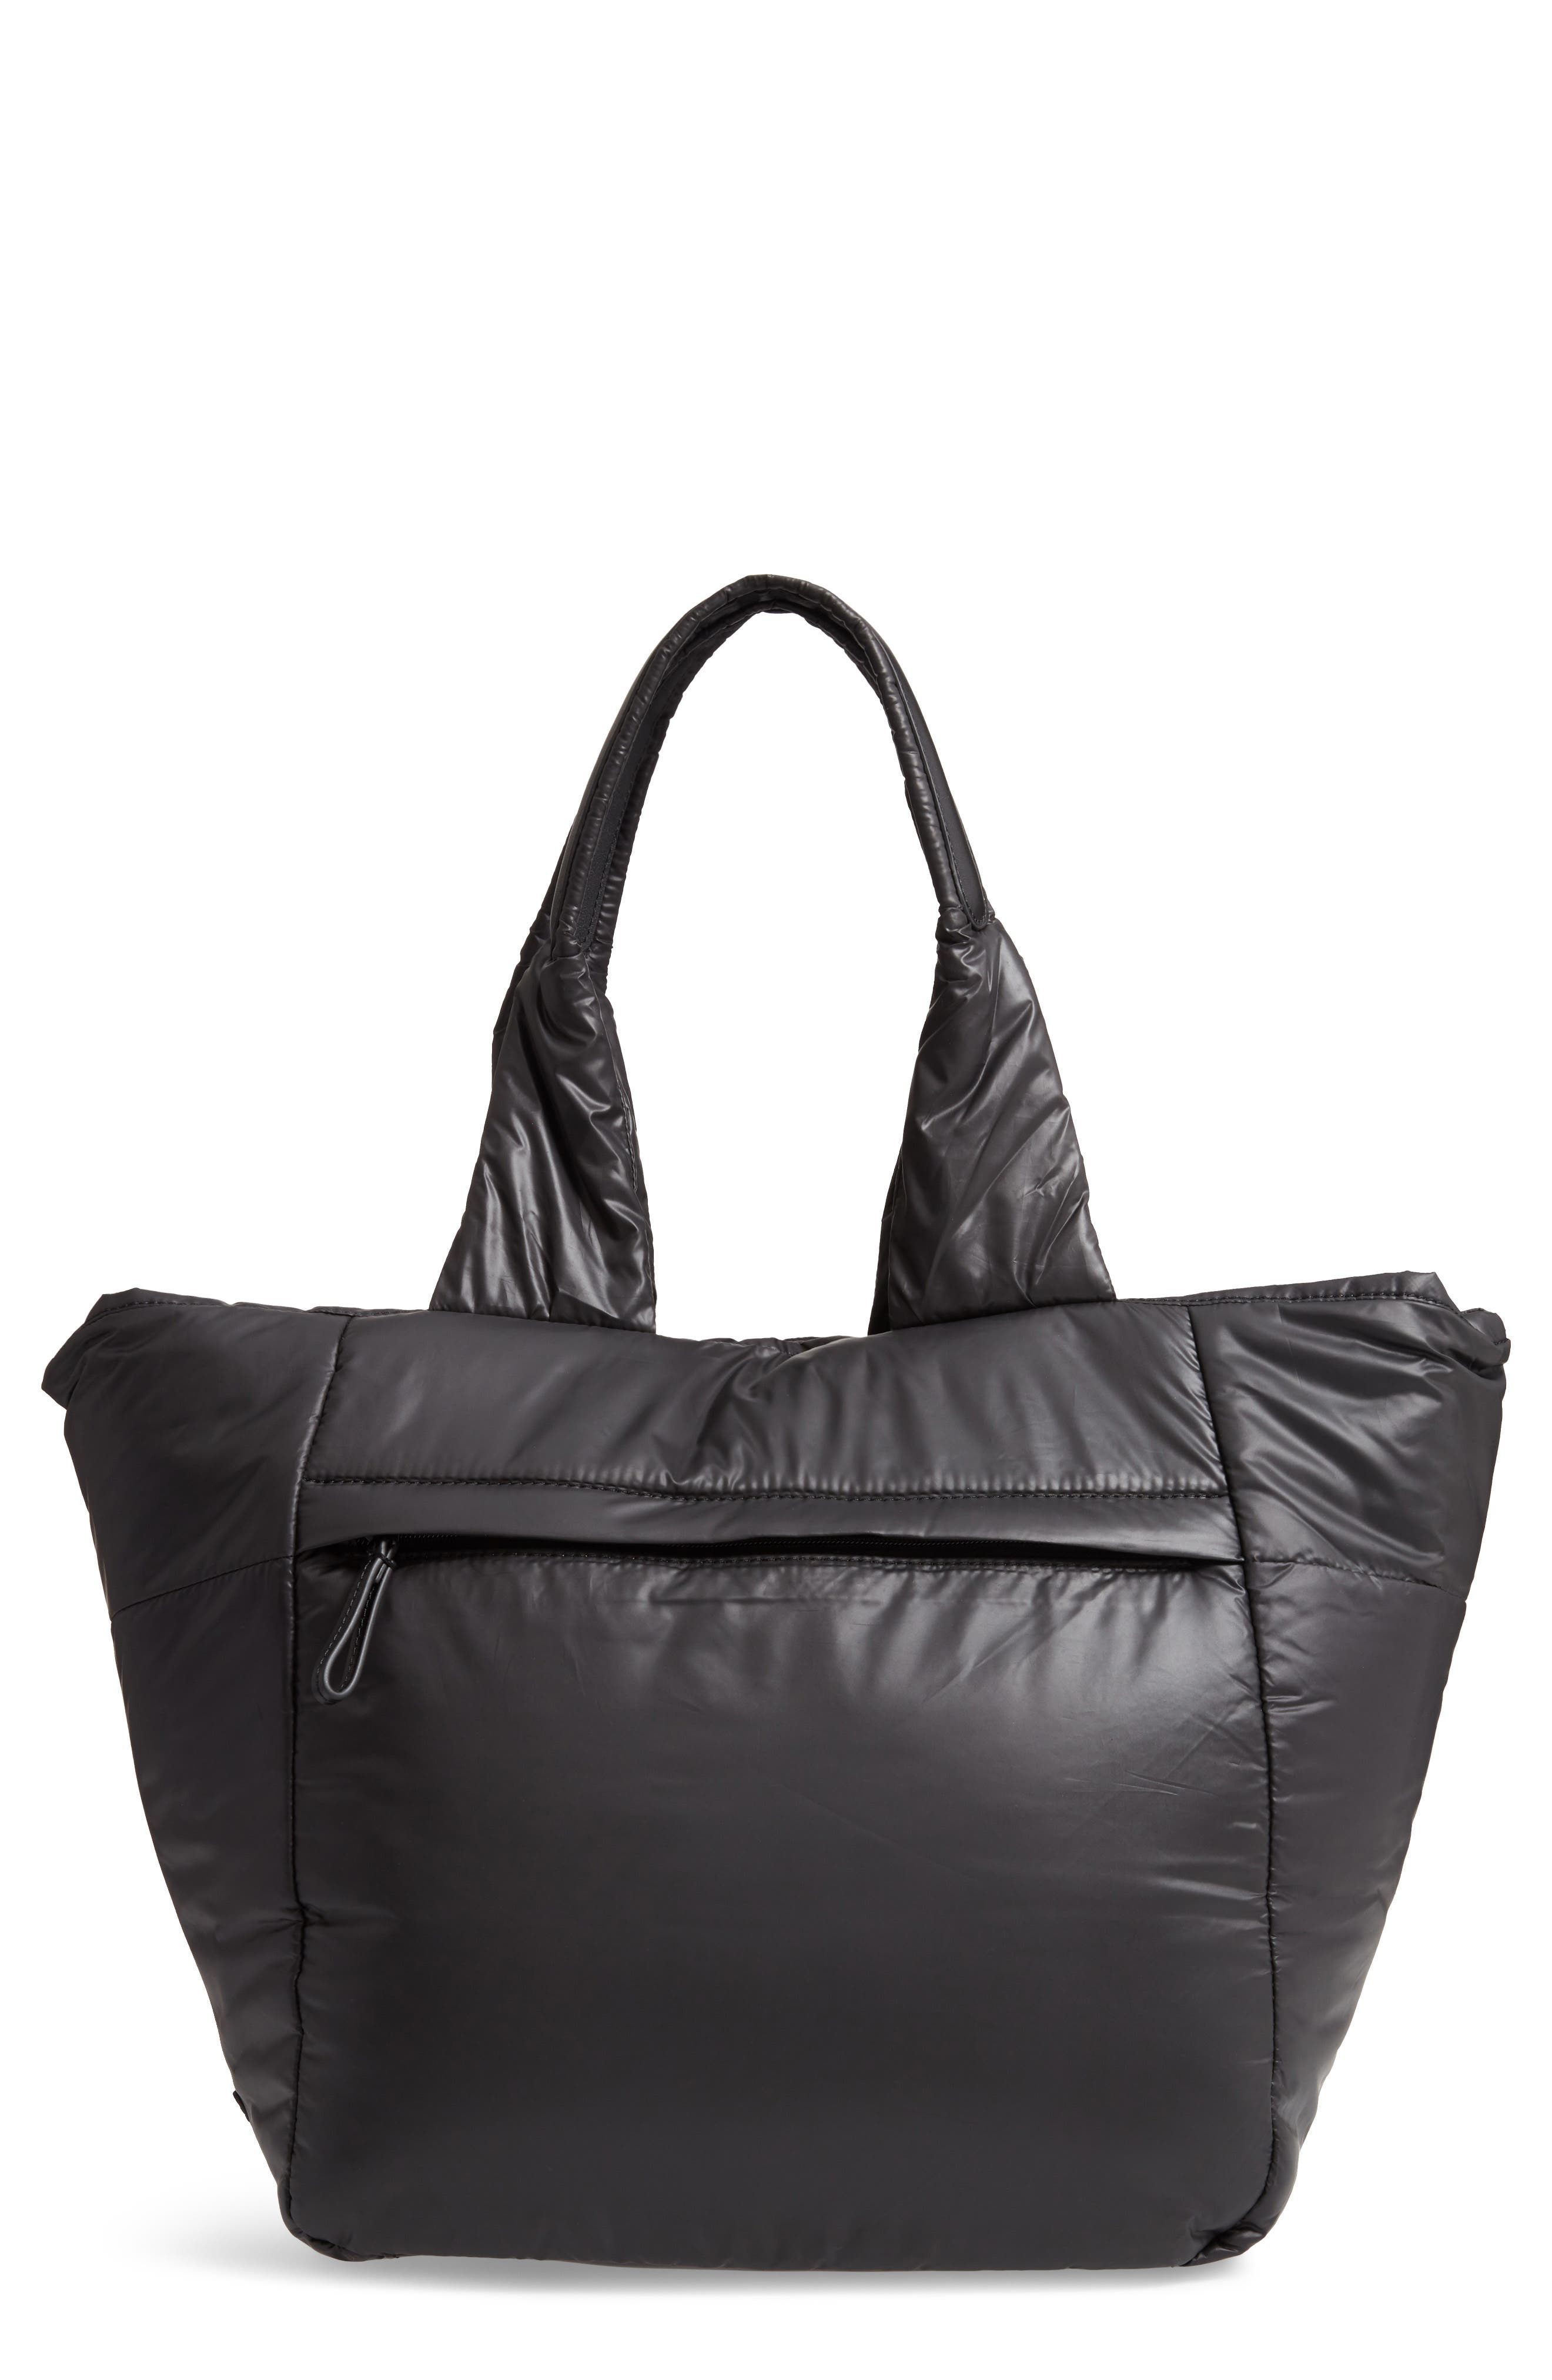 Cumulus Tote,                         Main,                         color, BLACK